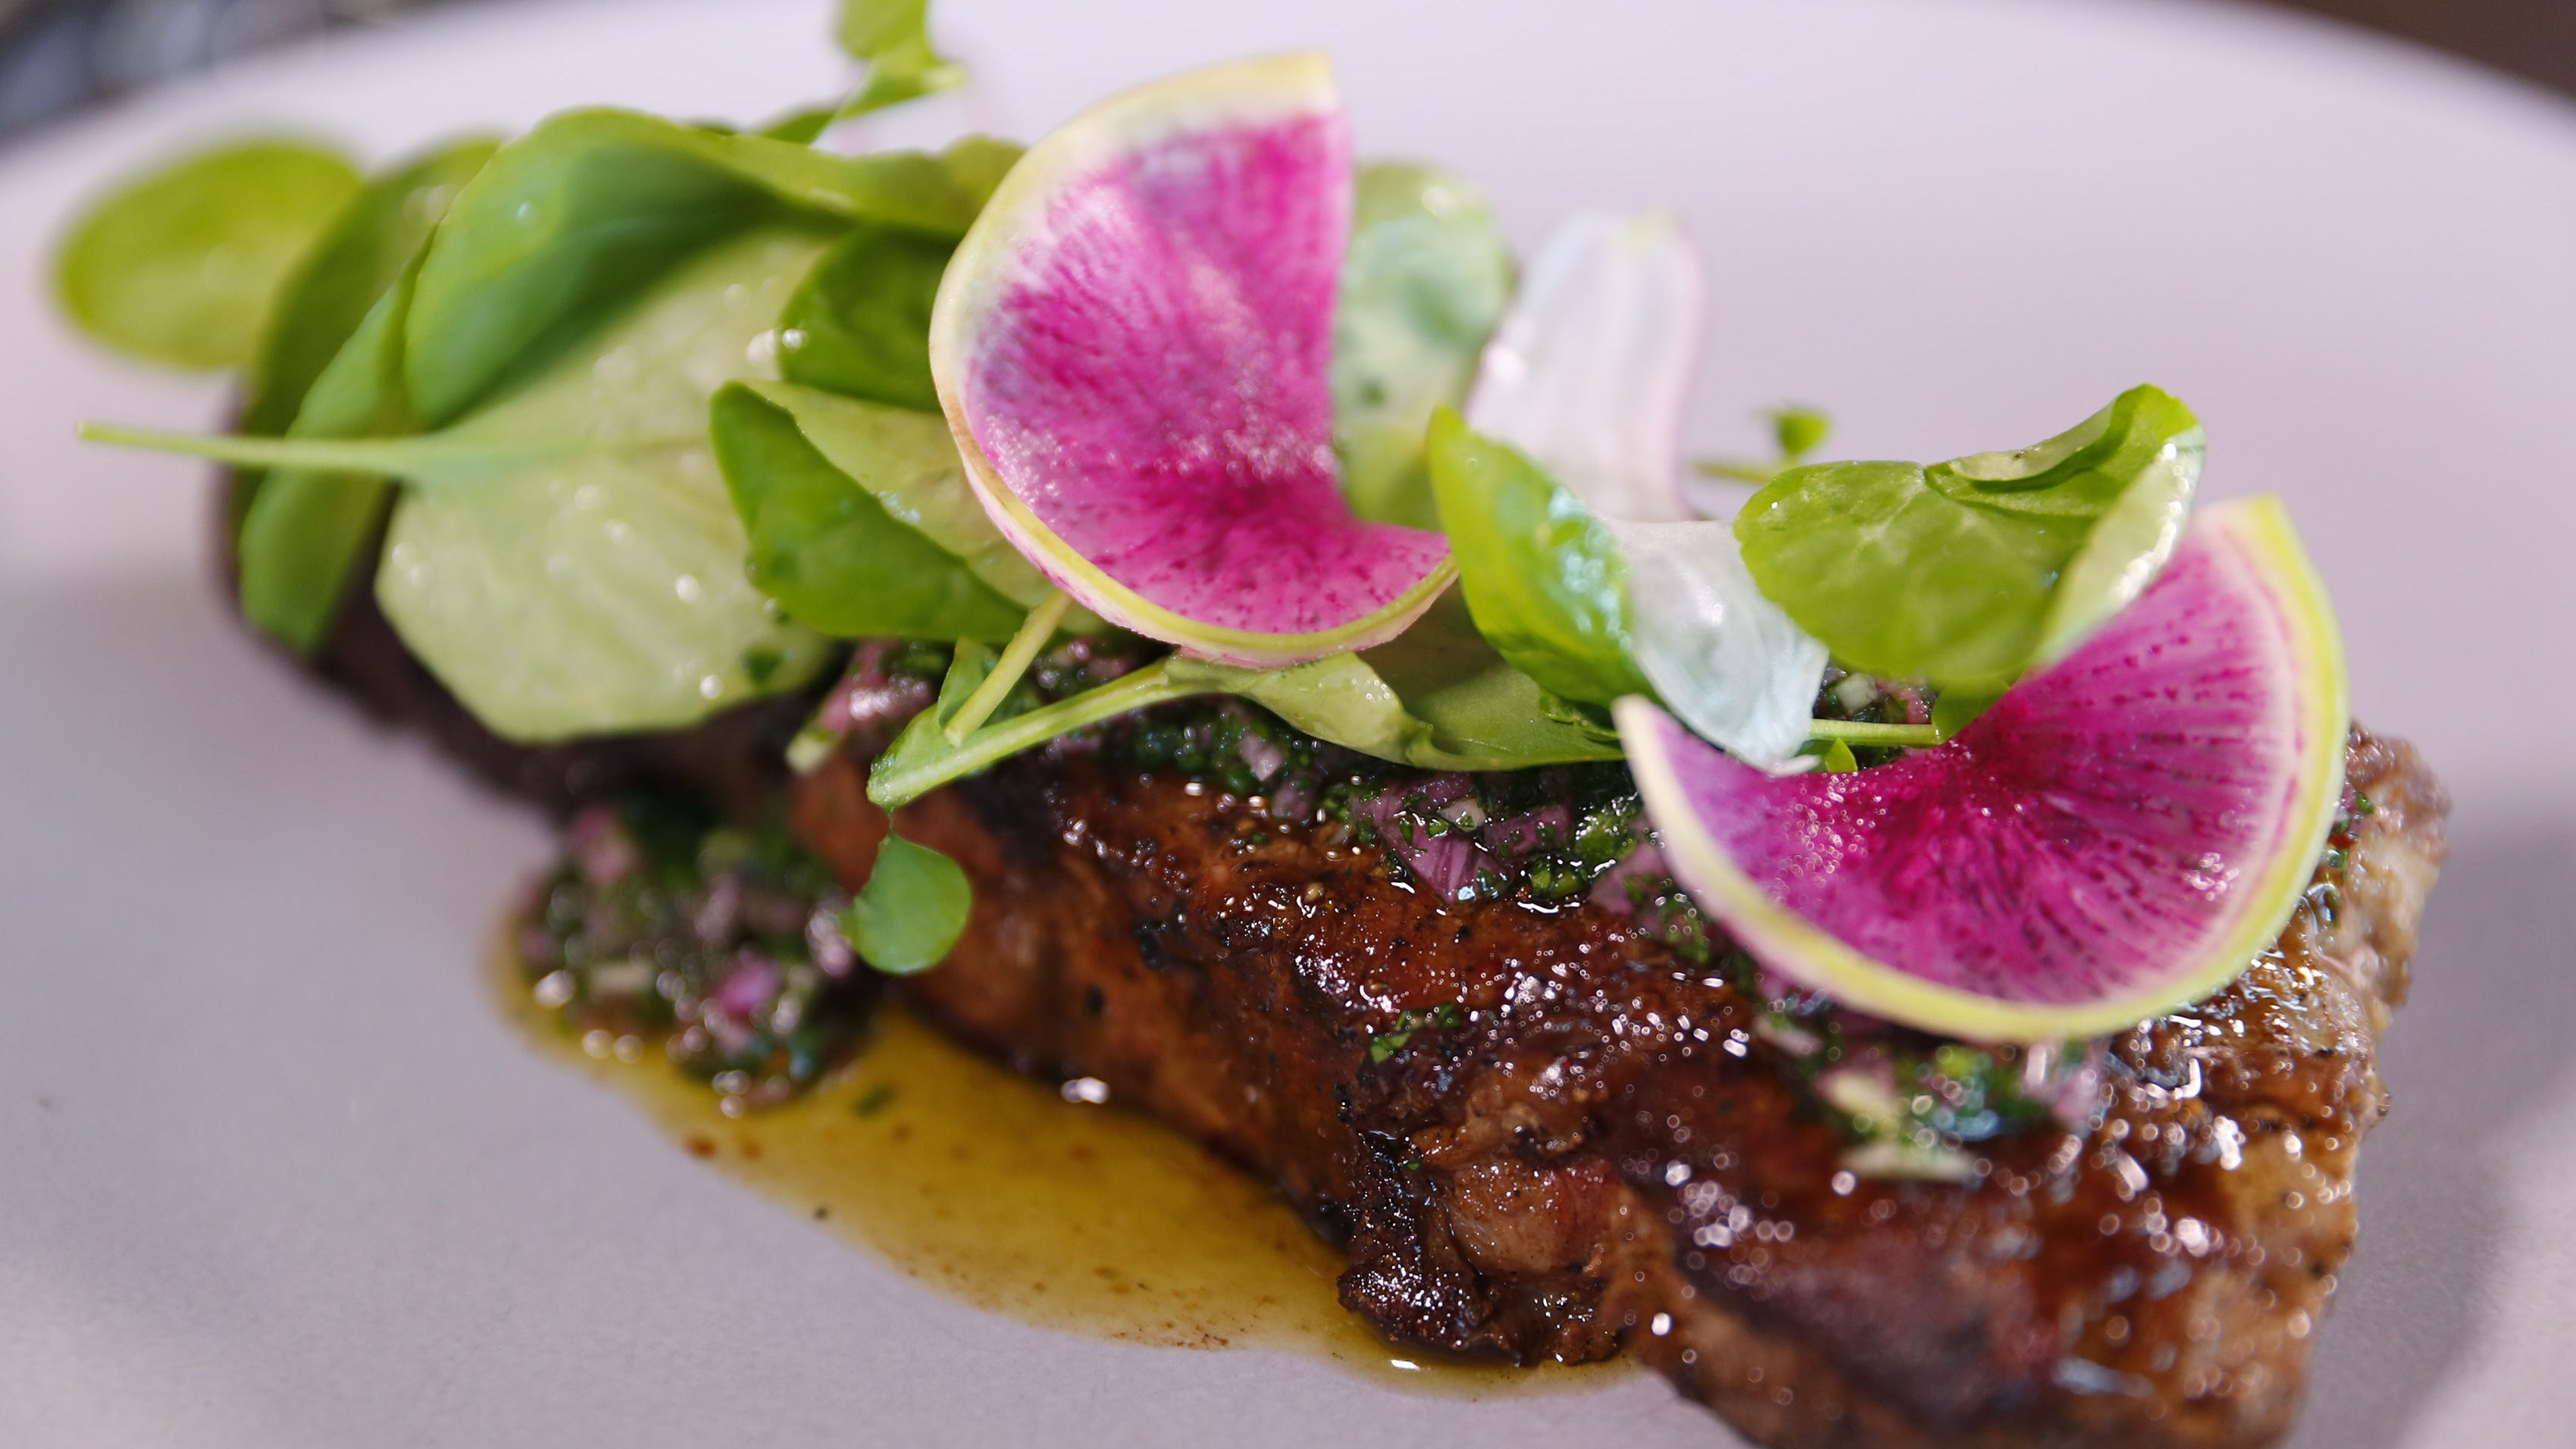 New chef perfects resort cuisine at Talavera at Four Seasons Scottsdale